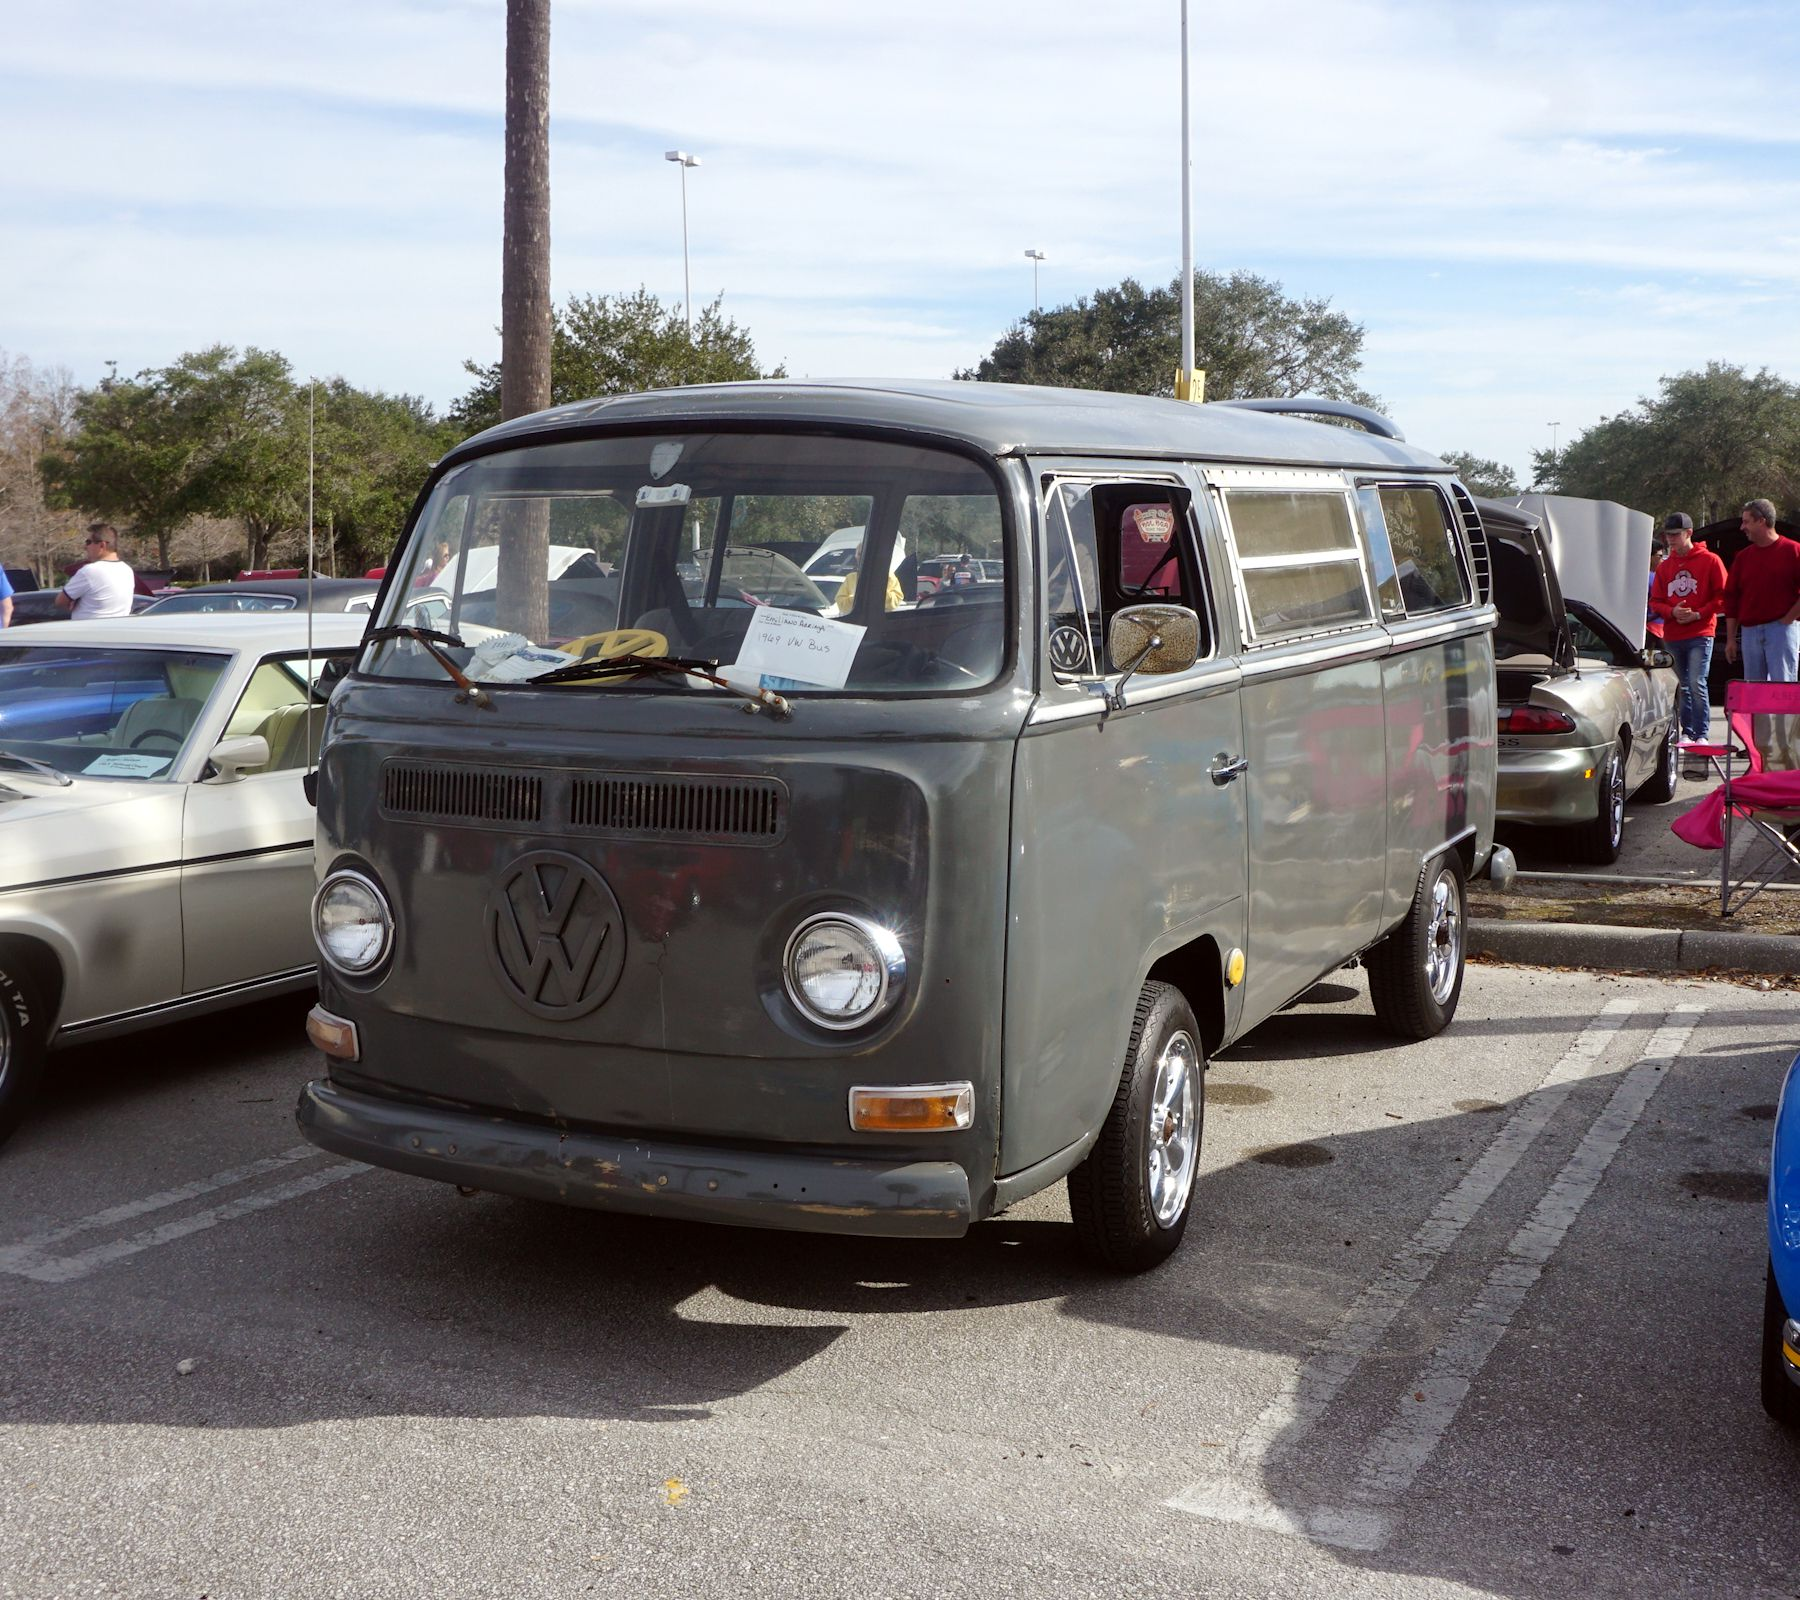 Grey Volks Wagon Bus At Cops And Cars For Kids Car Show